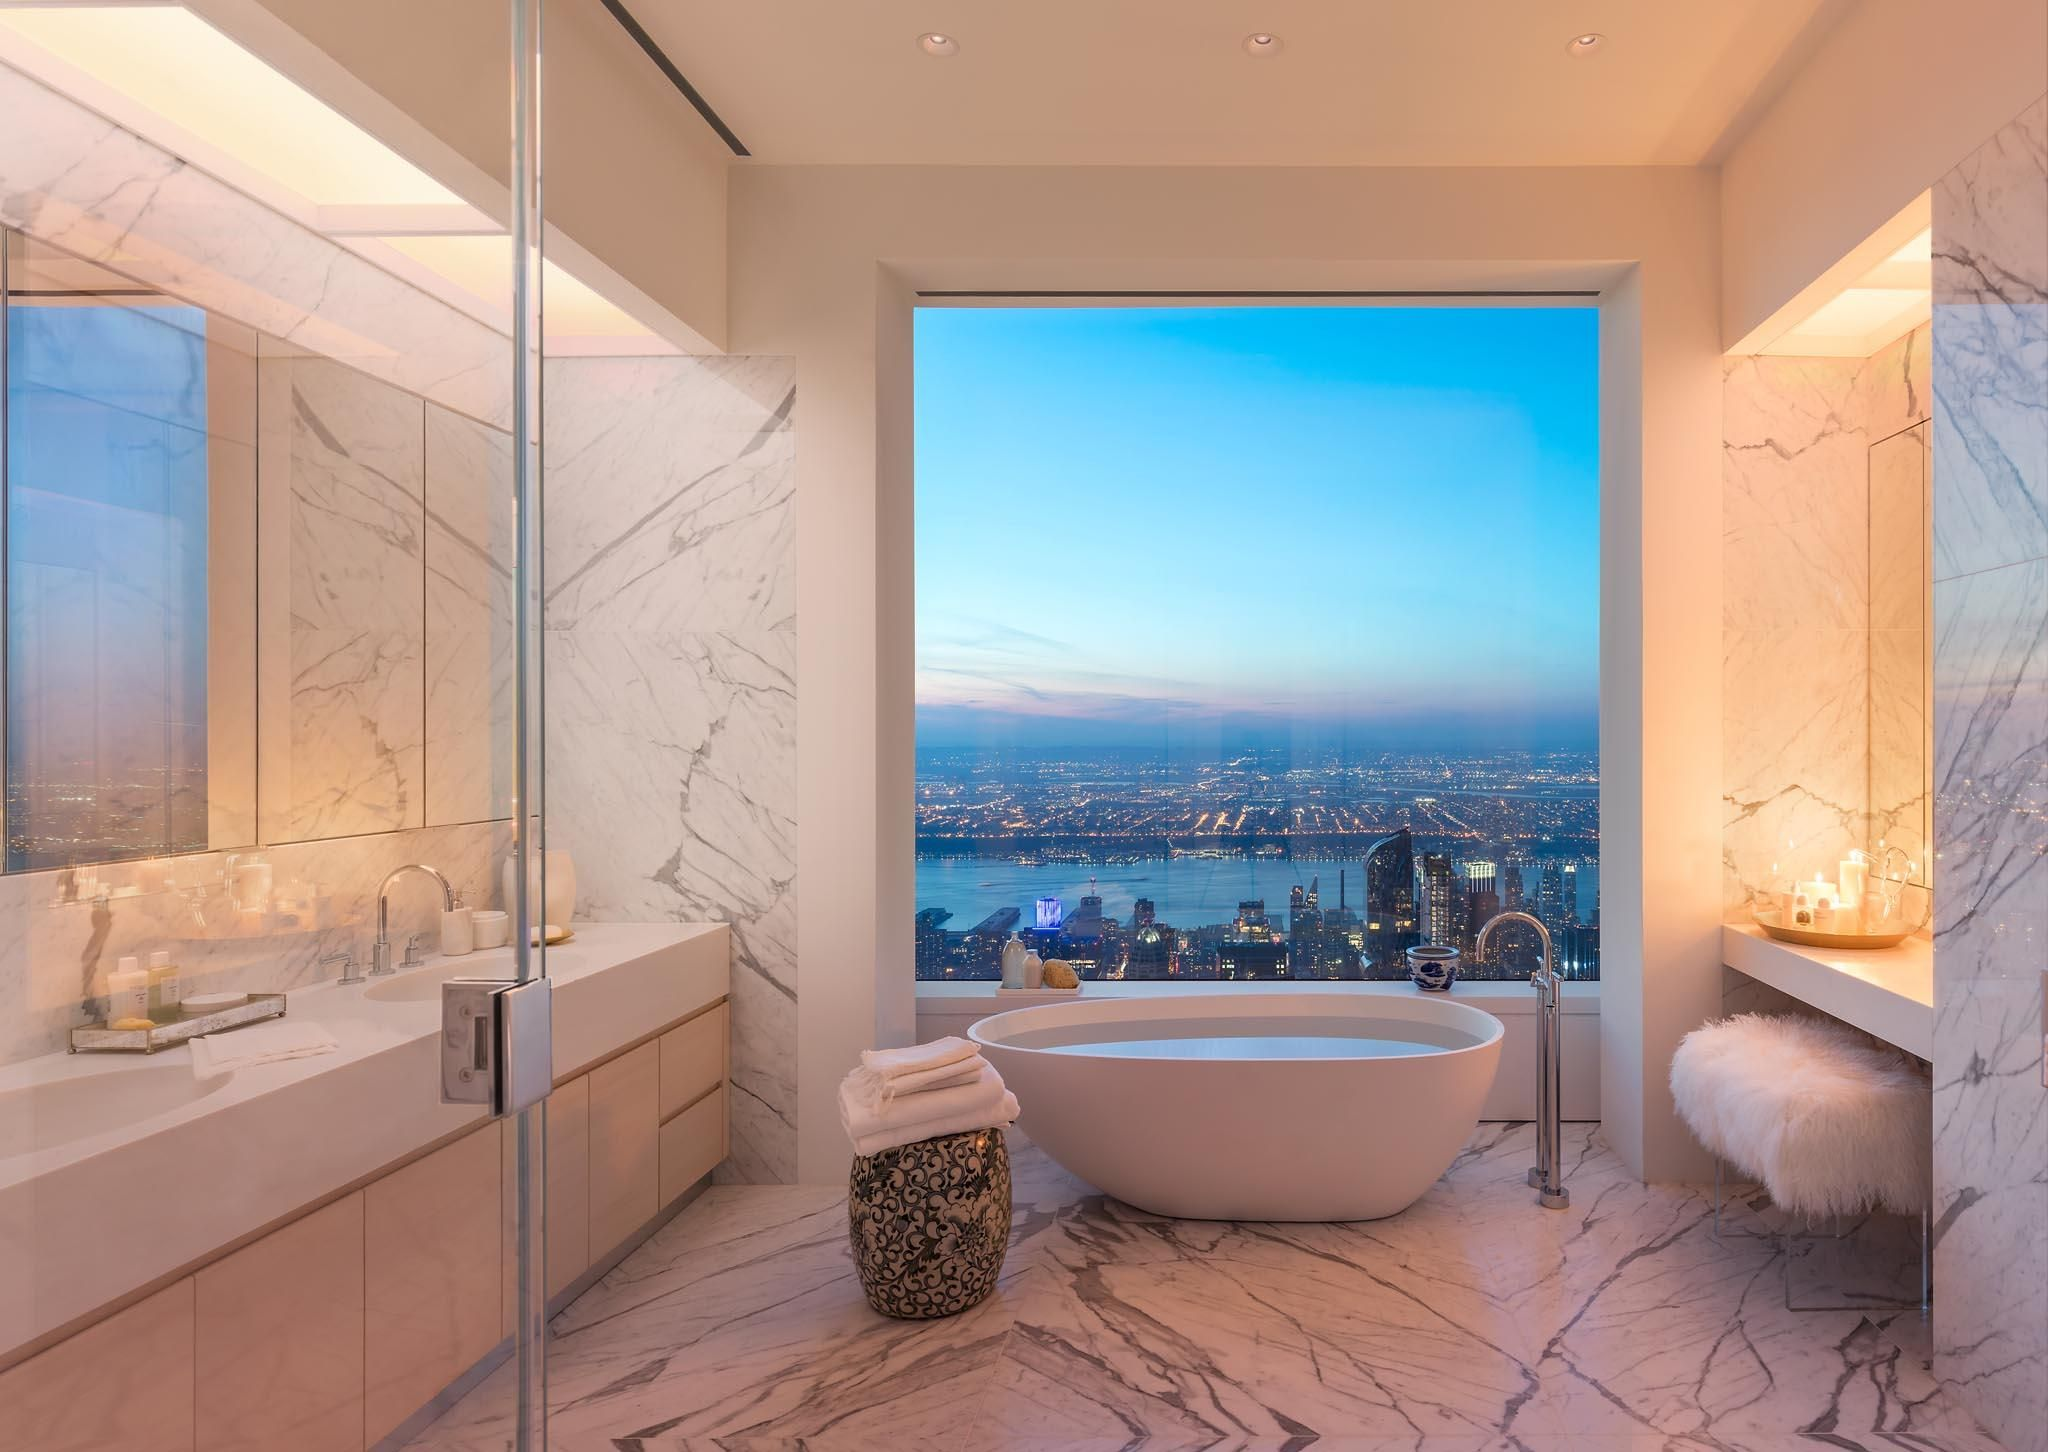 Tub with a view 432 Park Ave apartments [2048 1452] | | BATHROOM ...